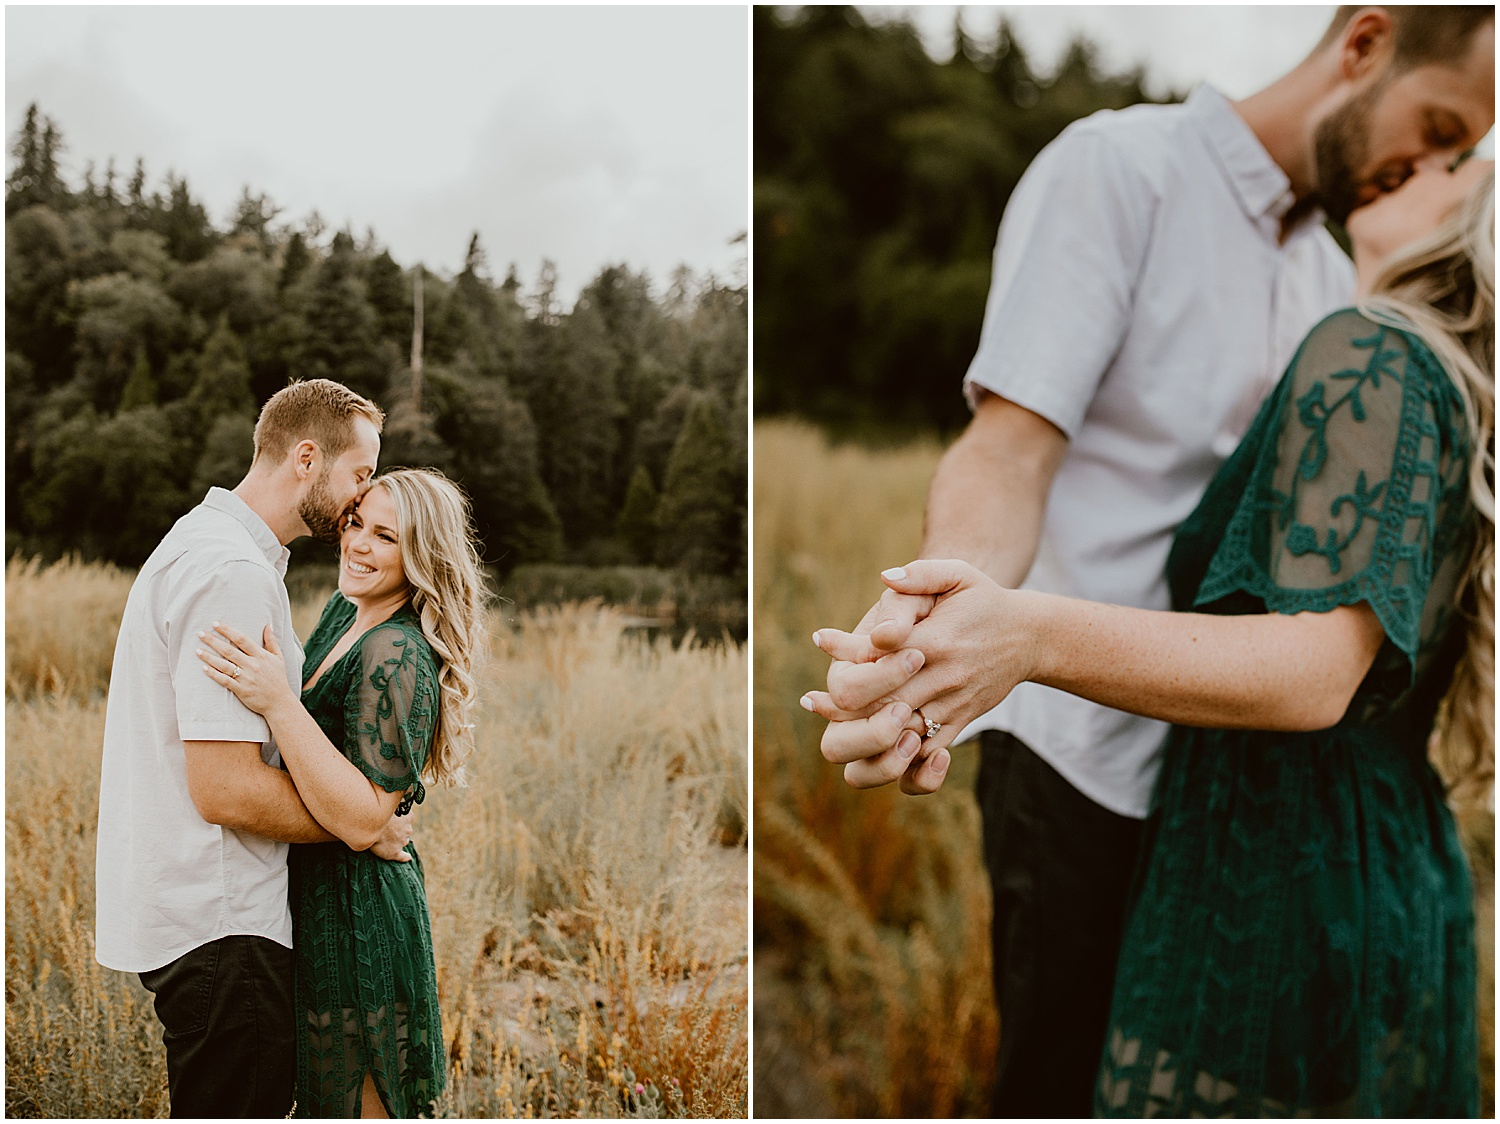 Palomar-Mountain-Engagement-D+M-Diana-Lake-Photography-7.jpg